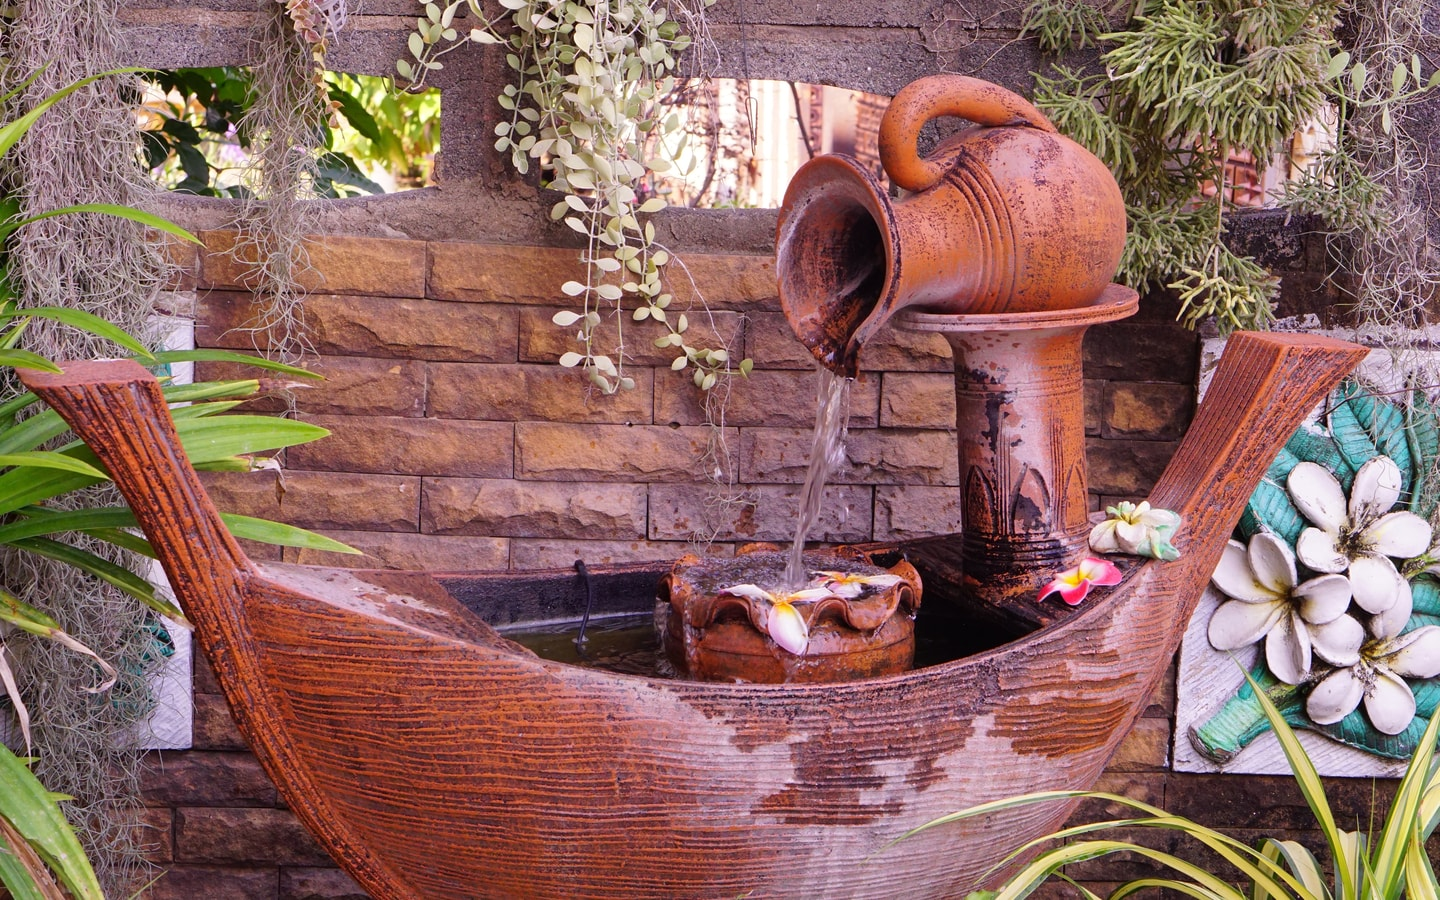 Incorporate water features when you build you own resort in the backyard.